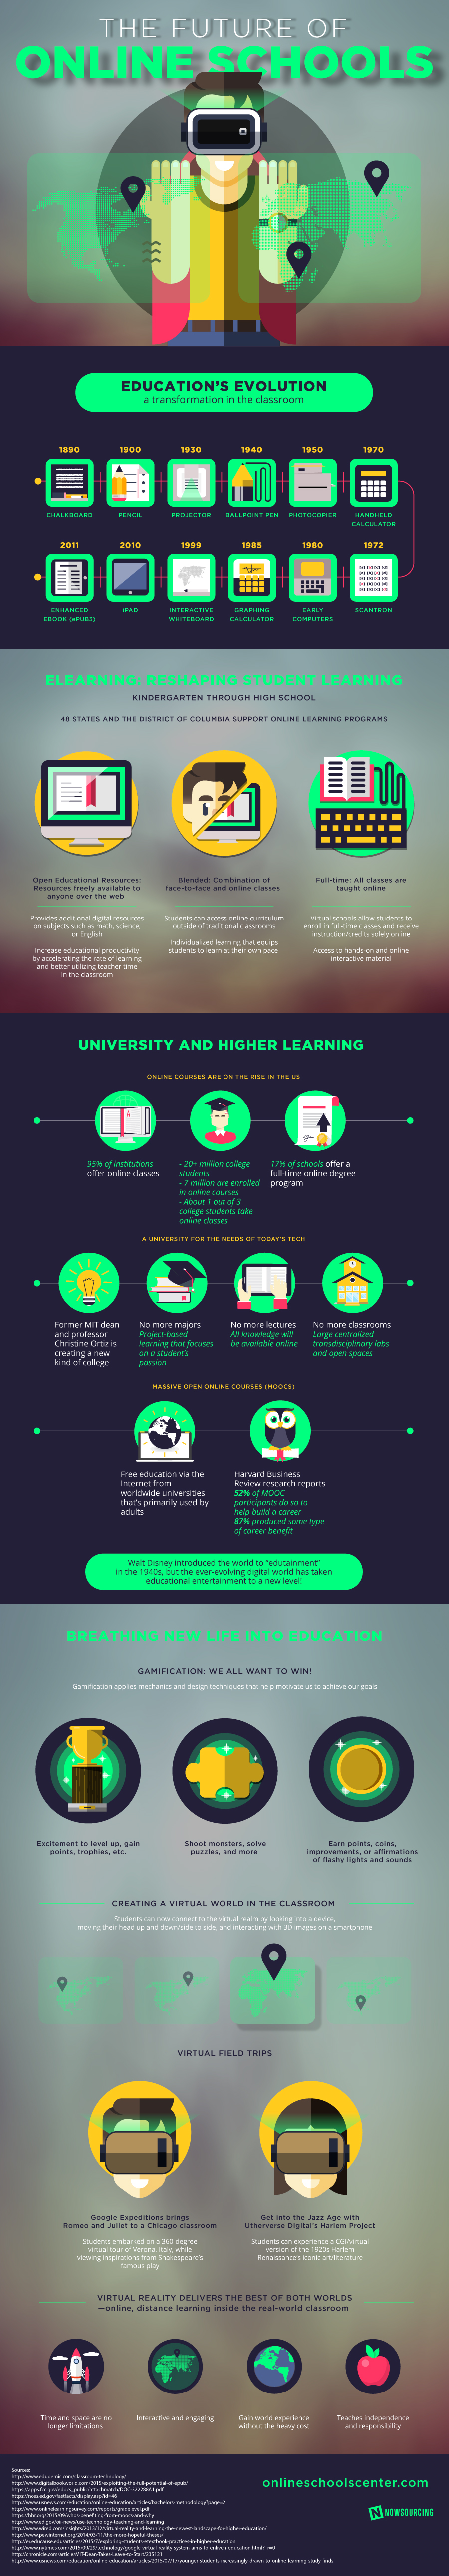 The Evolution Of Online Schools and What Their Future Looks Like - Infographic